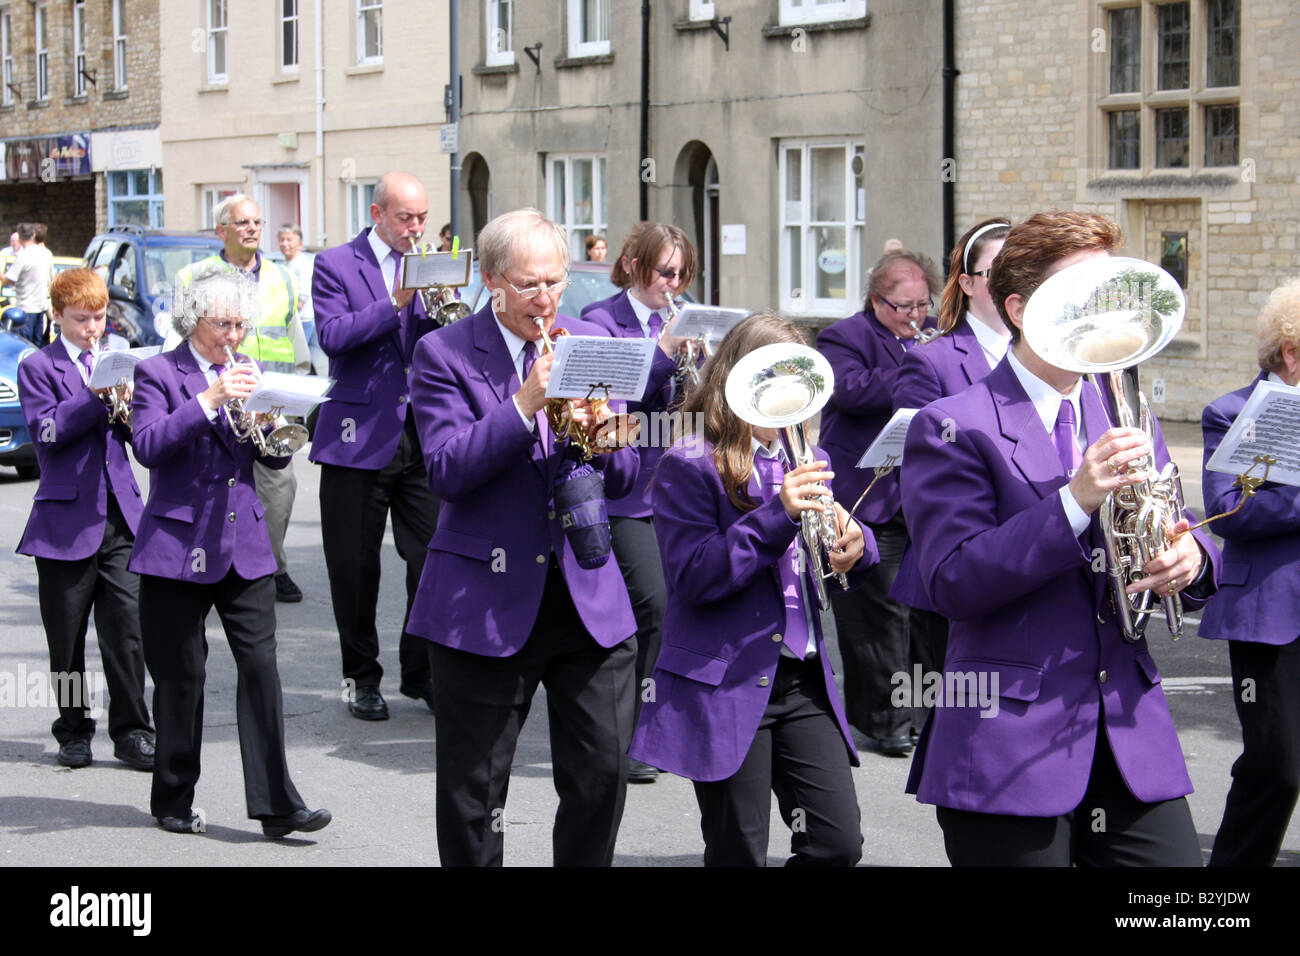 A brass band plays at Witney carnival Oxfordshire UK. - Stock Image